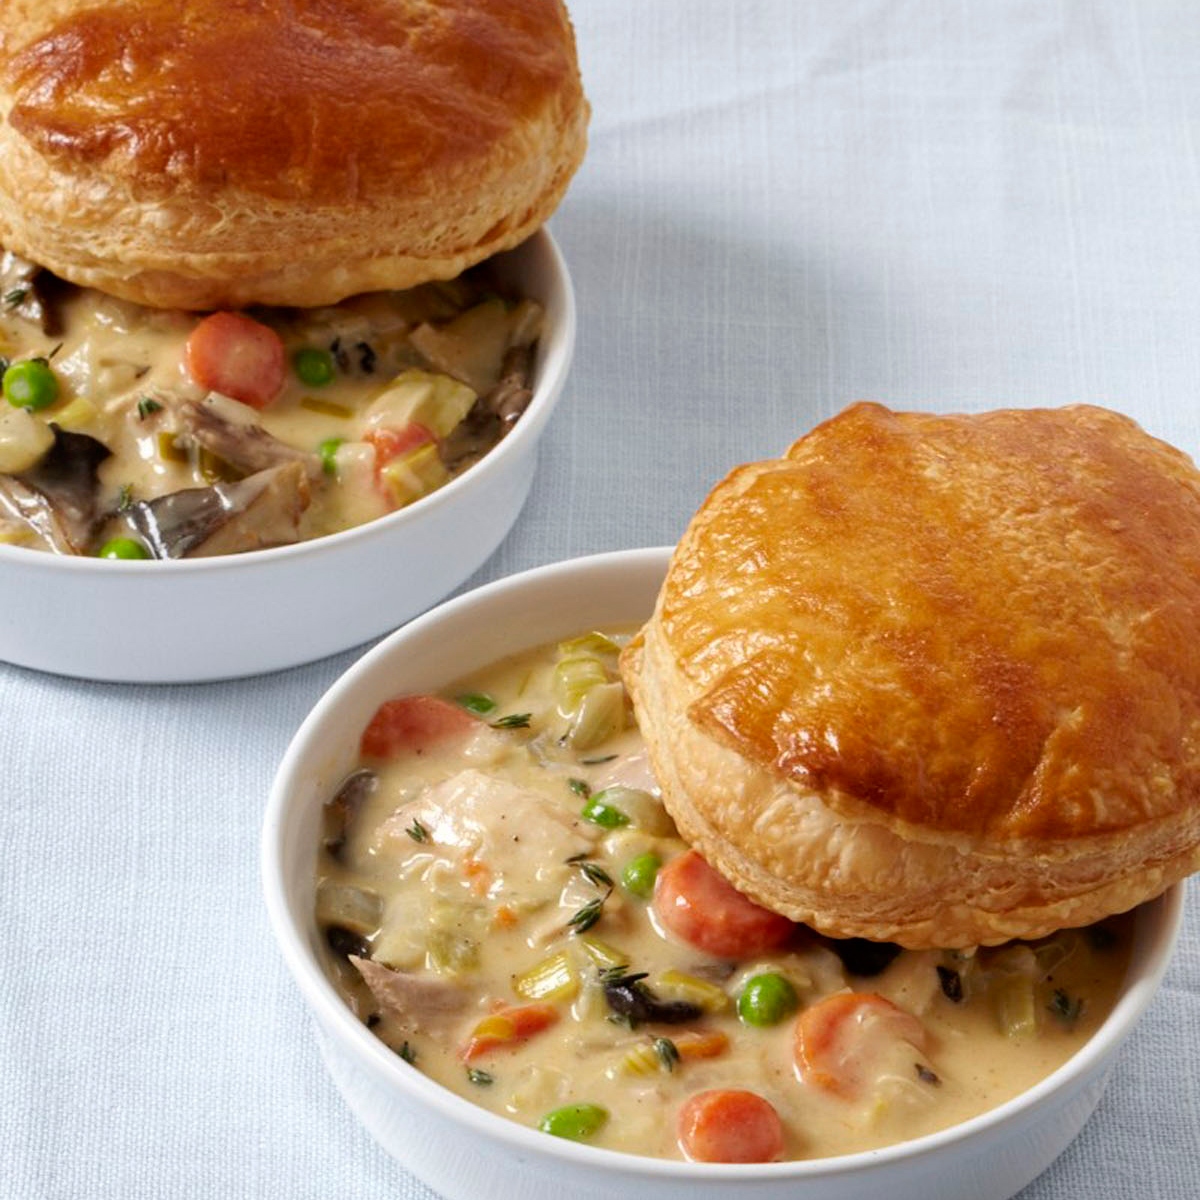 201004-r-chicken-pot-pie.jpg